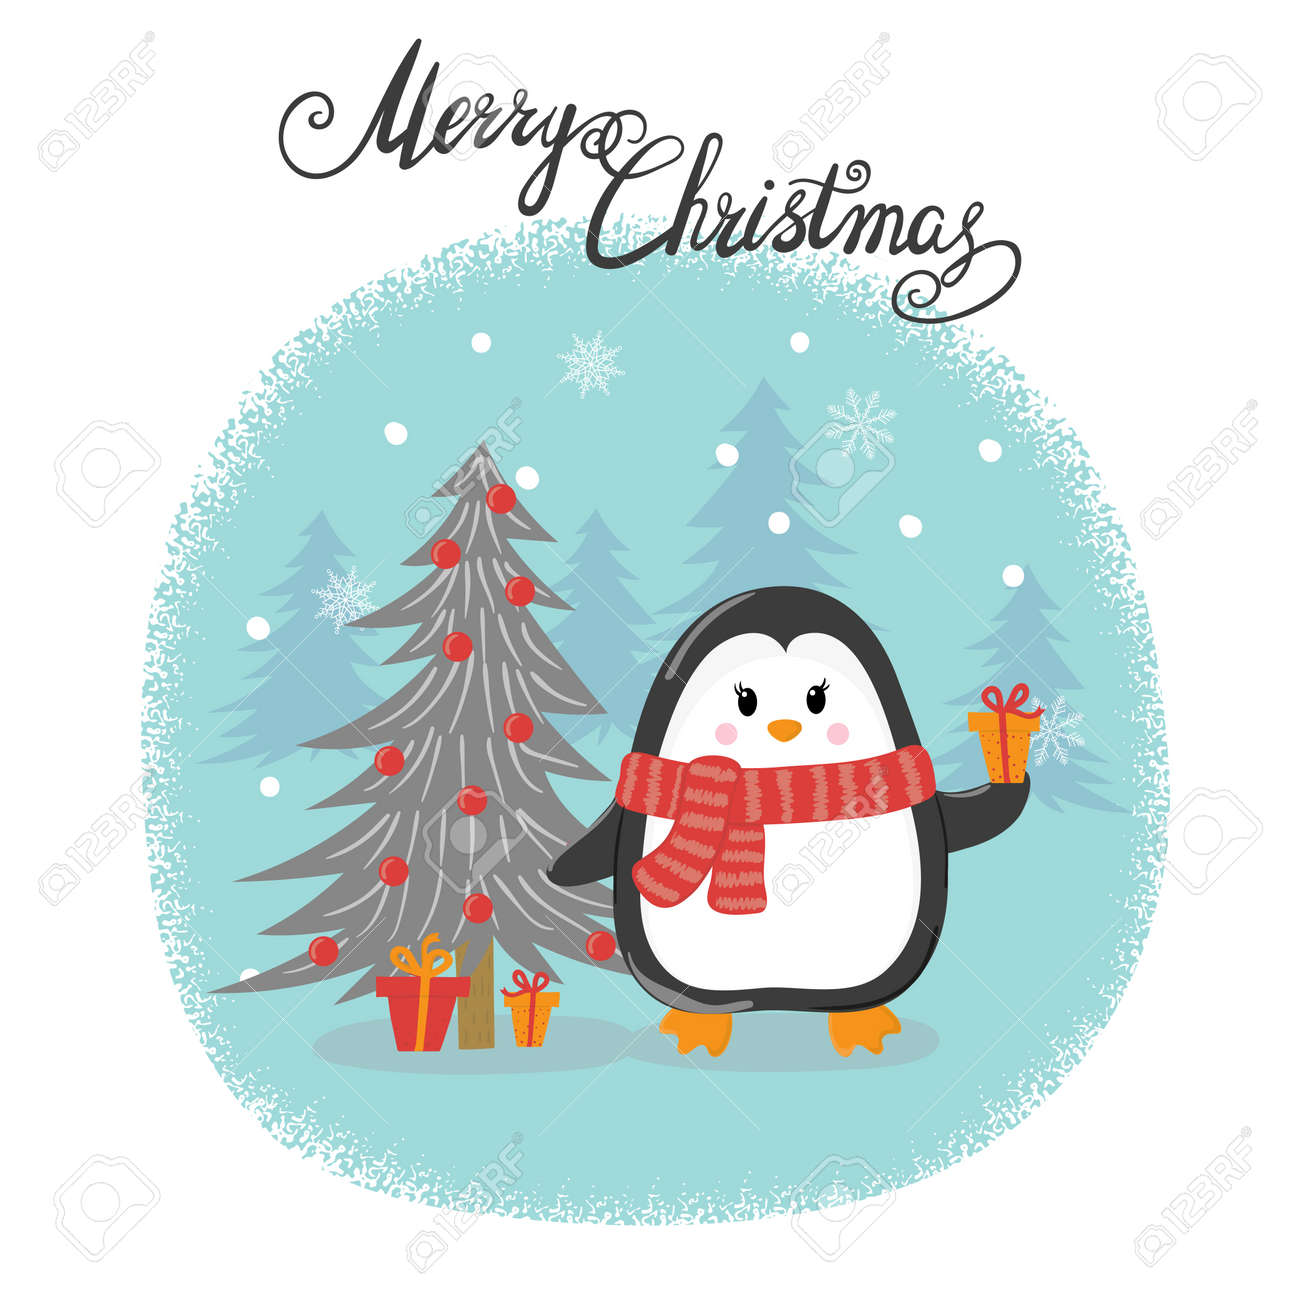 merry christmas card with cute cartoon penguin happy new year vector illustration for greeting cards